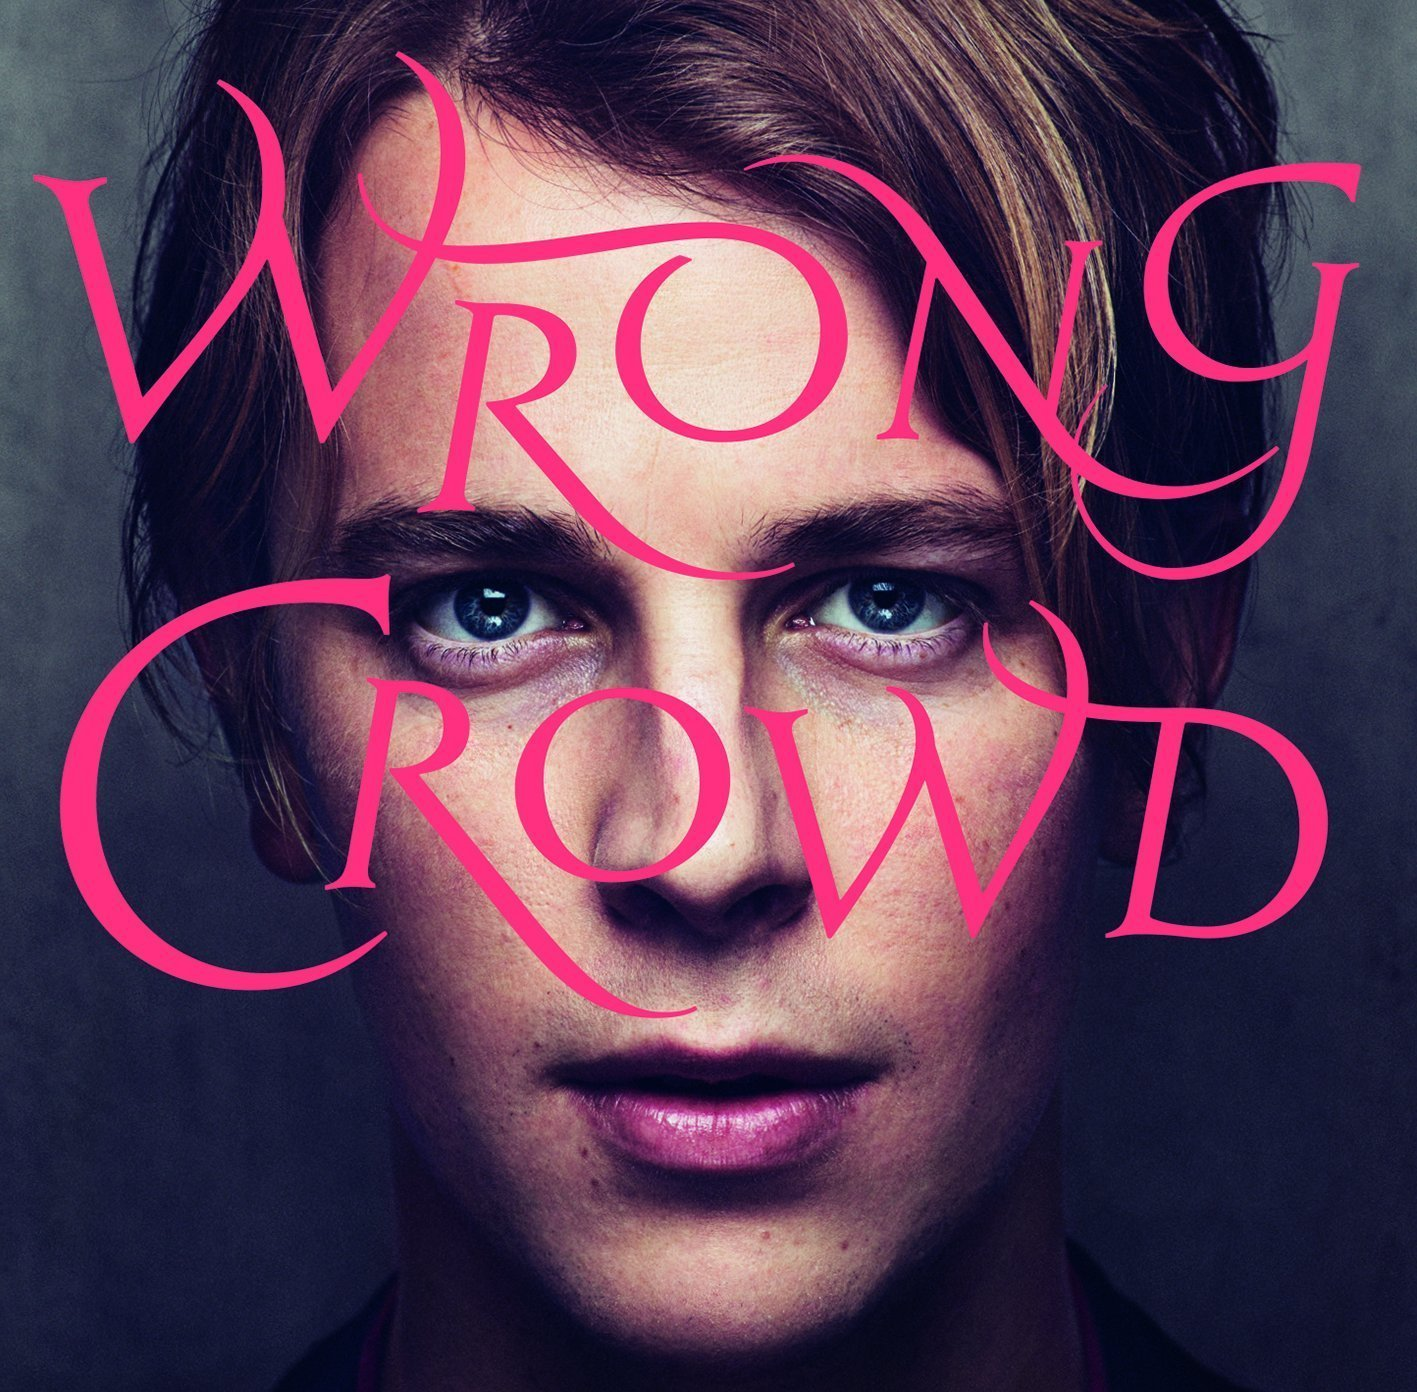 Wrong Crowd by Tom Odell image